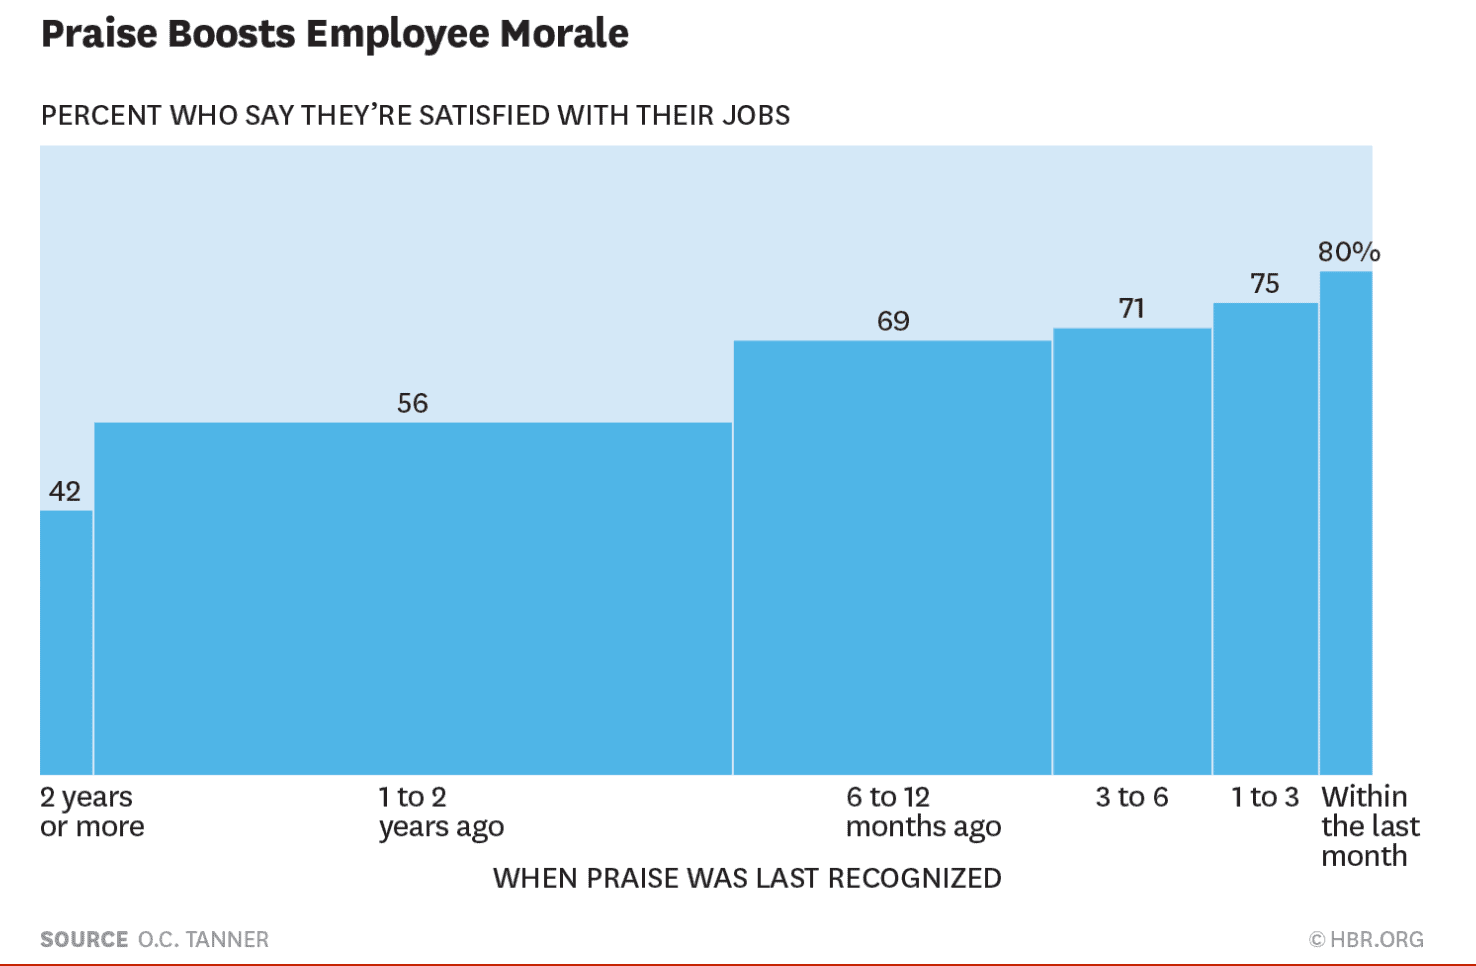 Bar chart by HBR that shows how much praise boosts employee morale